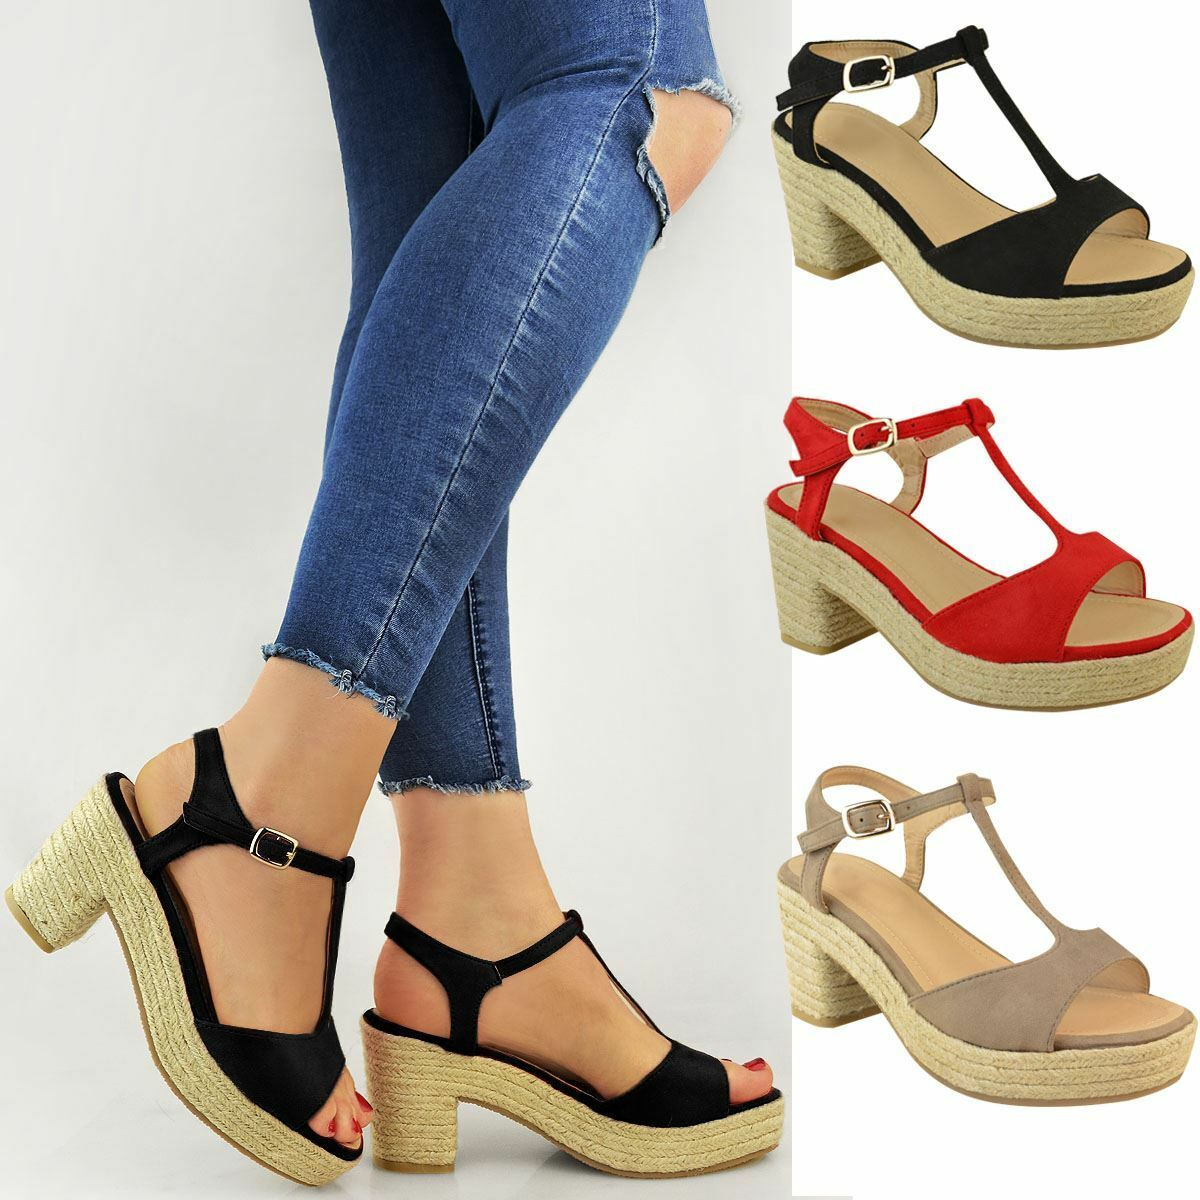 Man's/Woman's Womens Ladies Flatform High Mid Heel Platform Flatform Ladies Sandals Wedge Ankle Strap Size Reliable quality Make full use of materials Selling new products RR1711 6b7b68